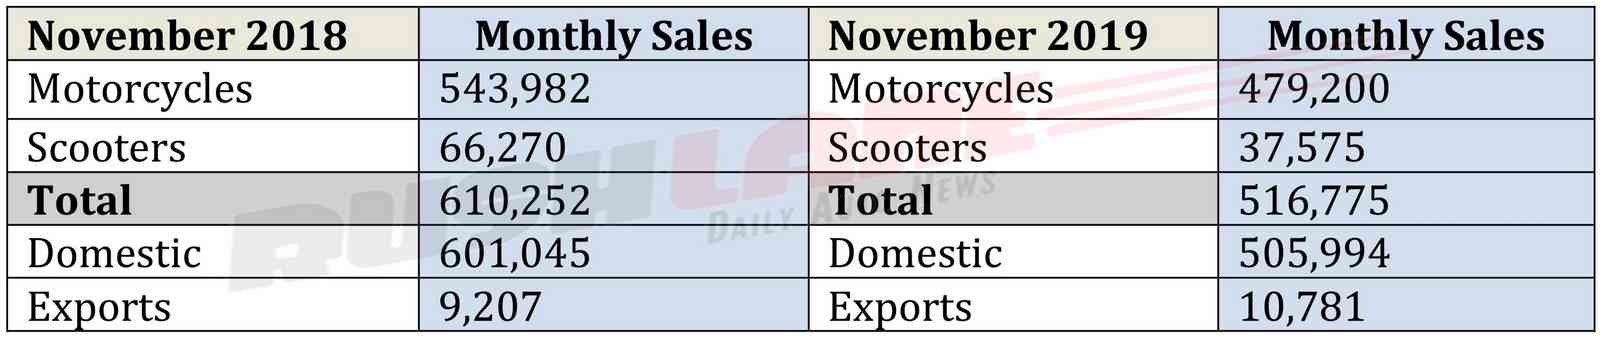 Hero Nov 2019 sales